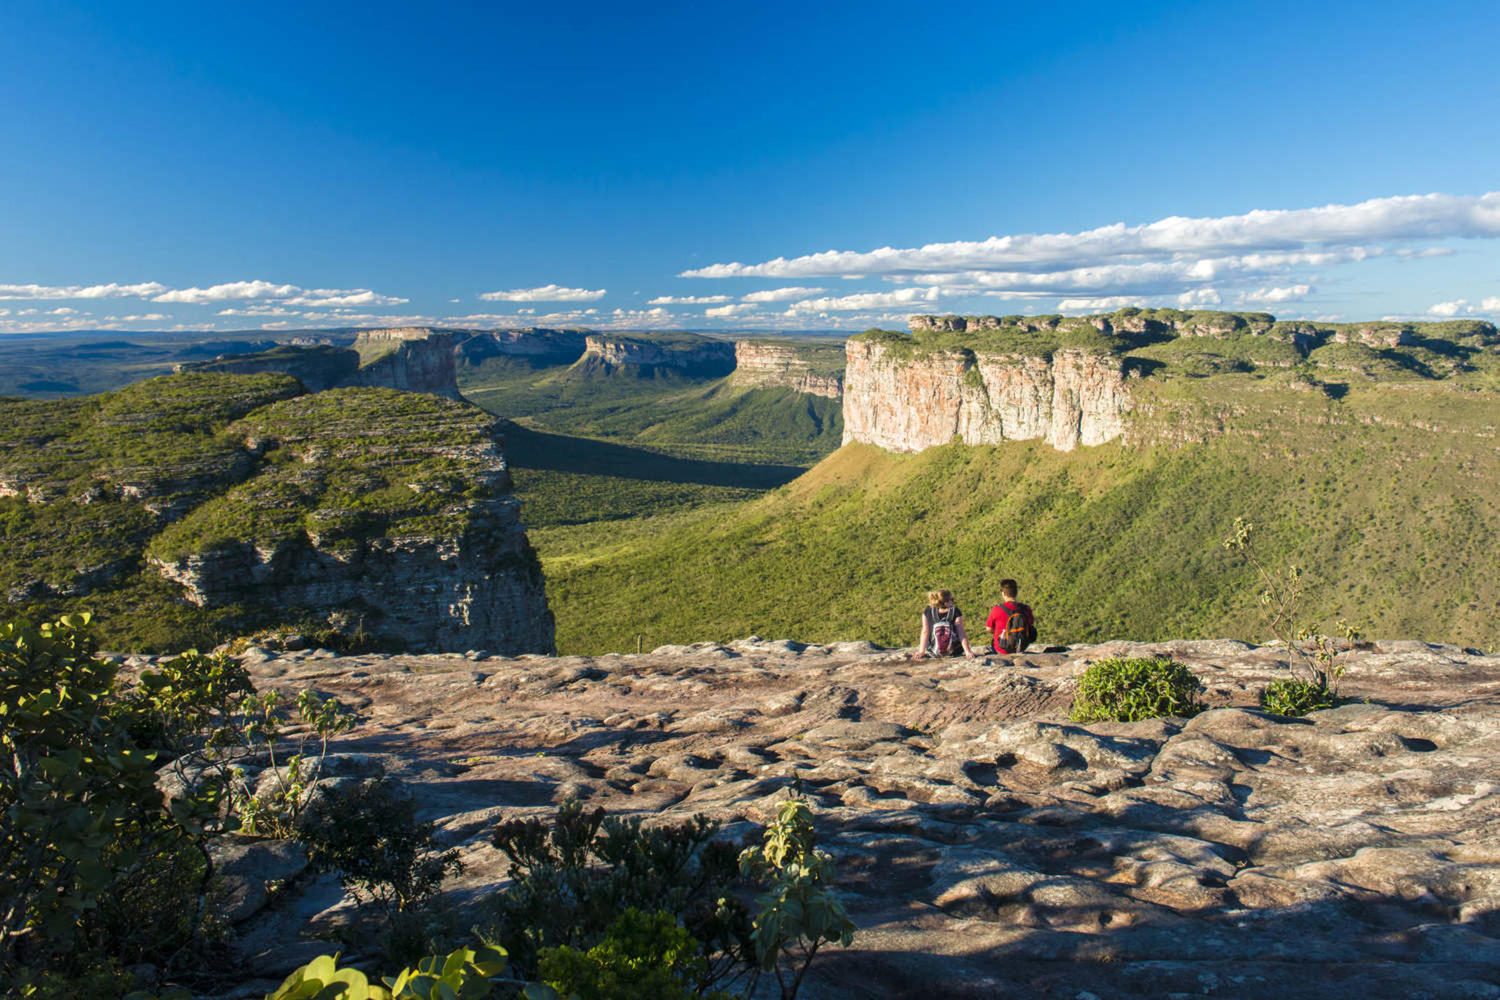 Enjoying the view at Chapada Diamantina national park